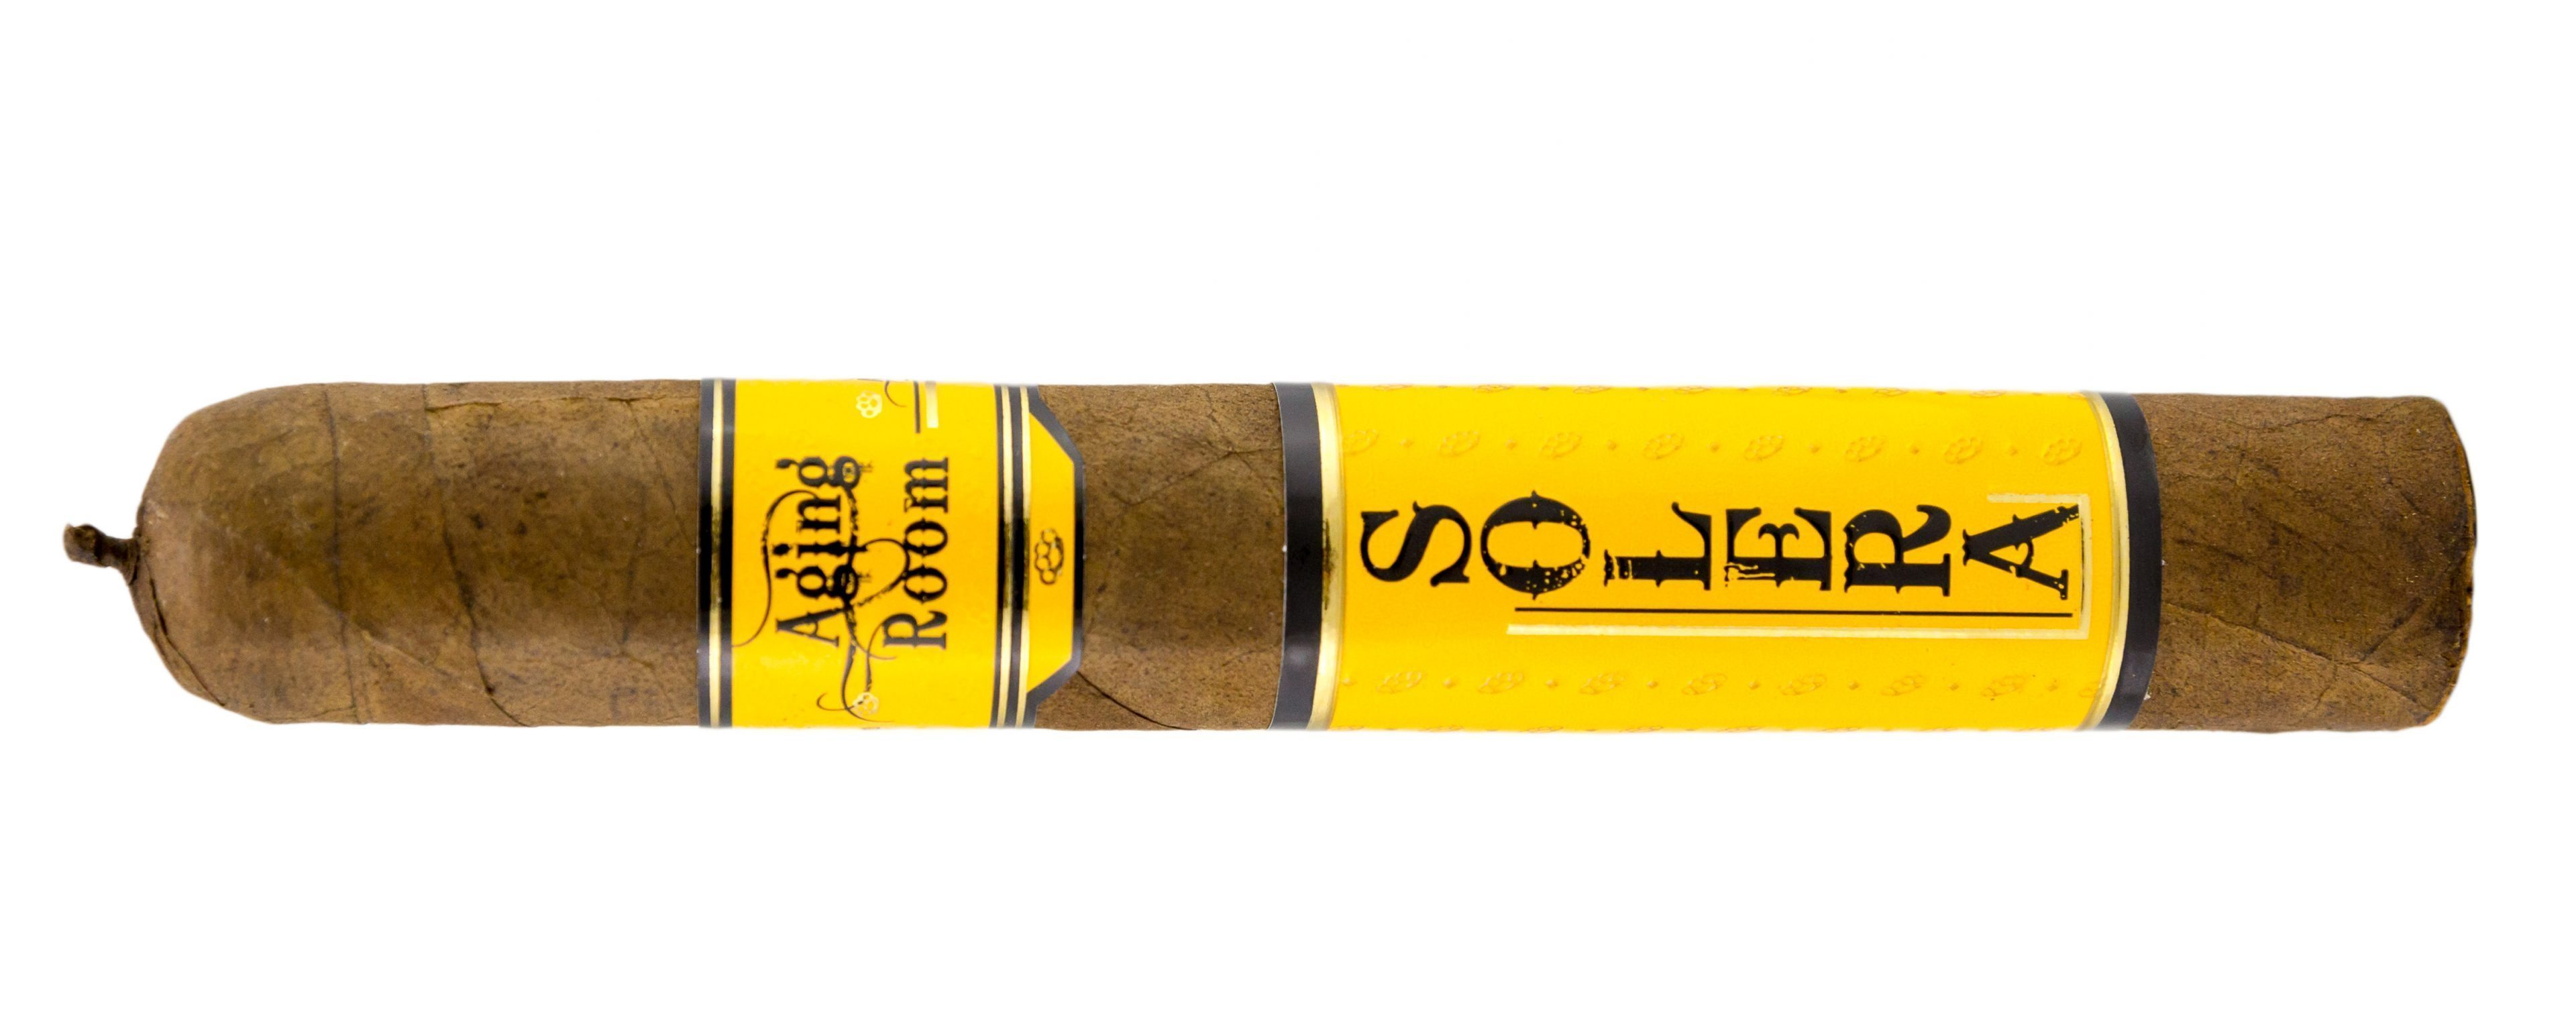 Blind Cigar Review: Aging Room | Solera Sungrown Fantastico